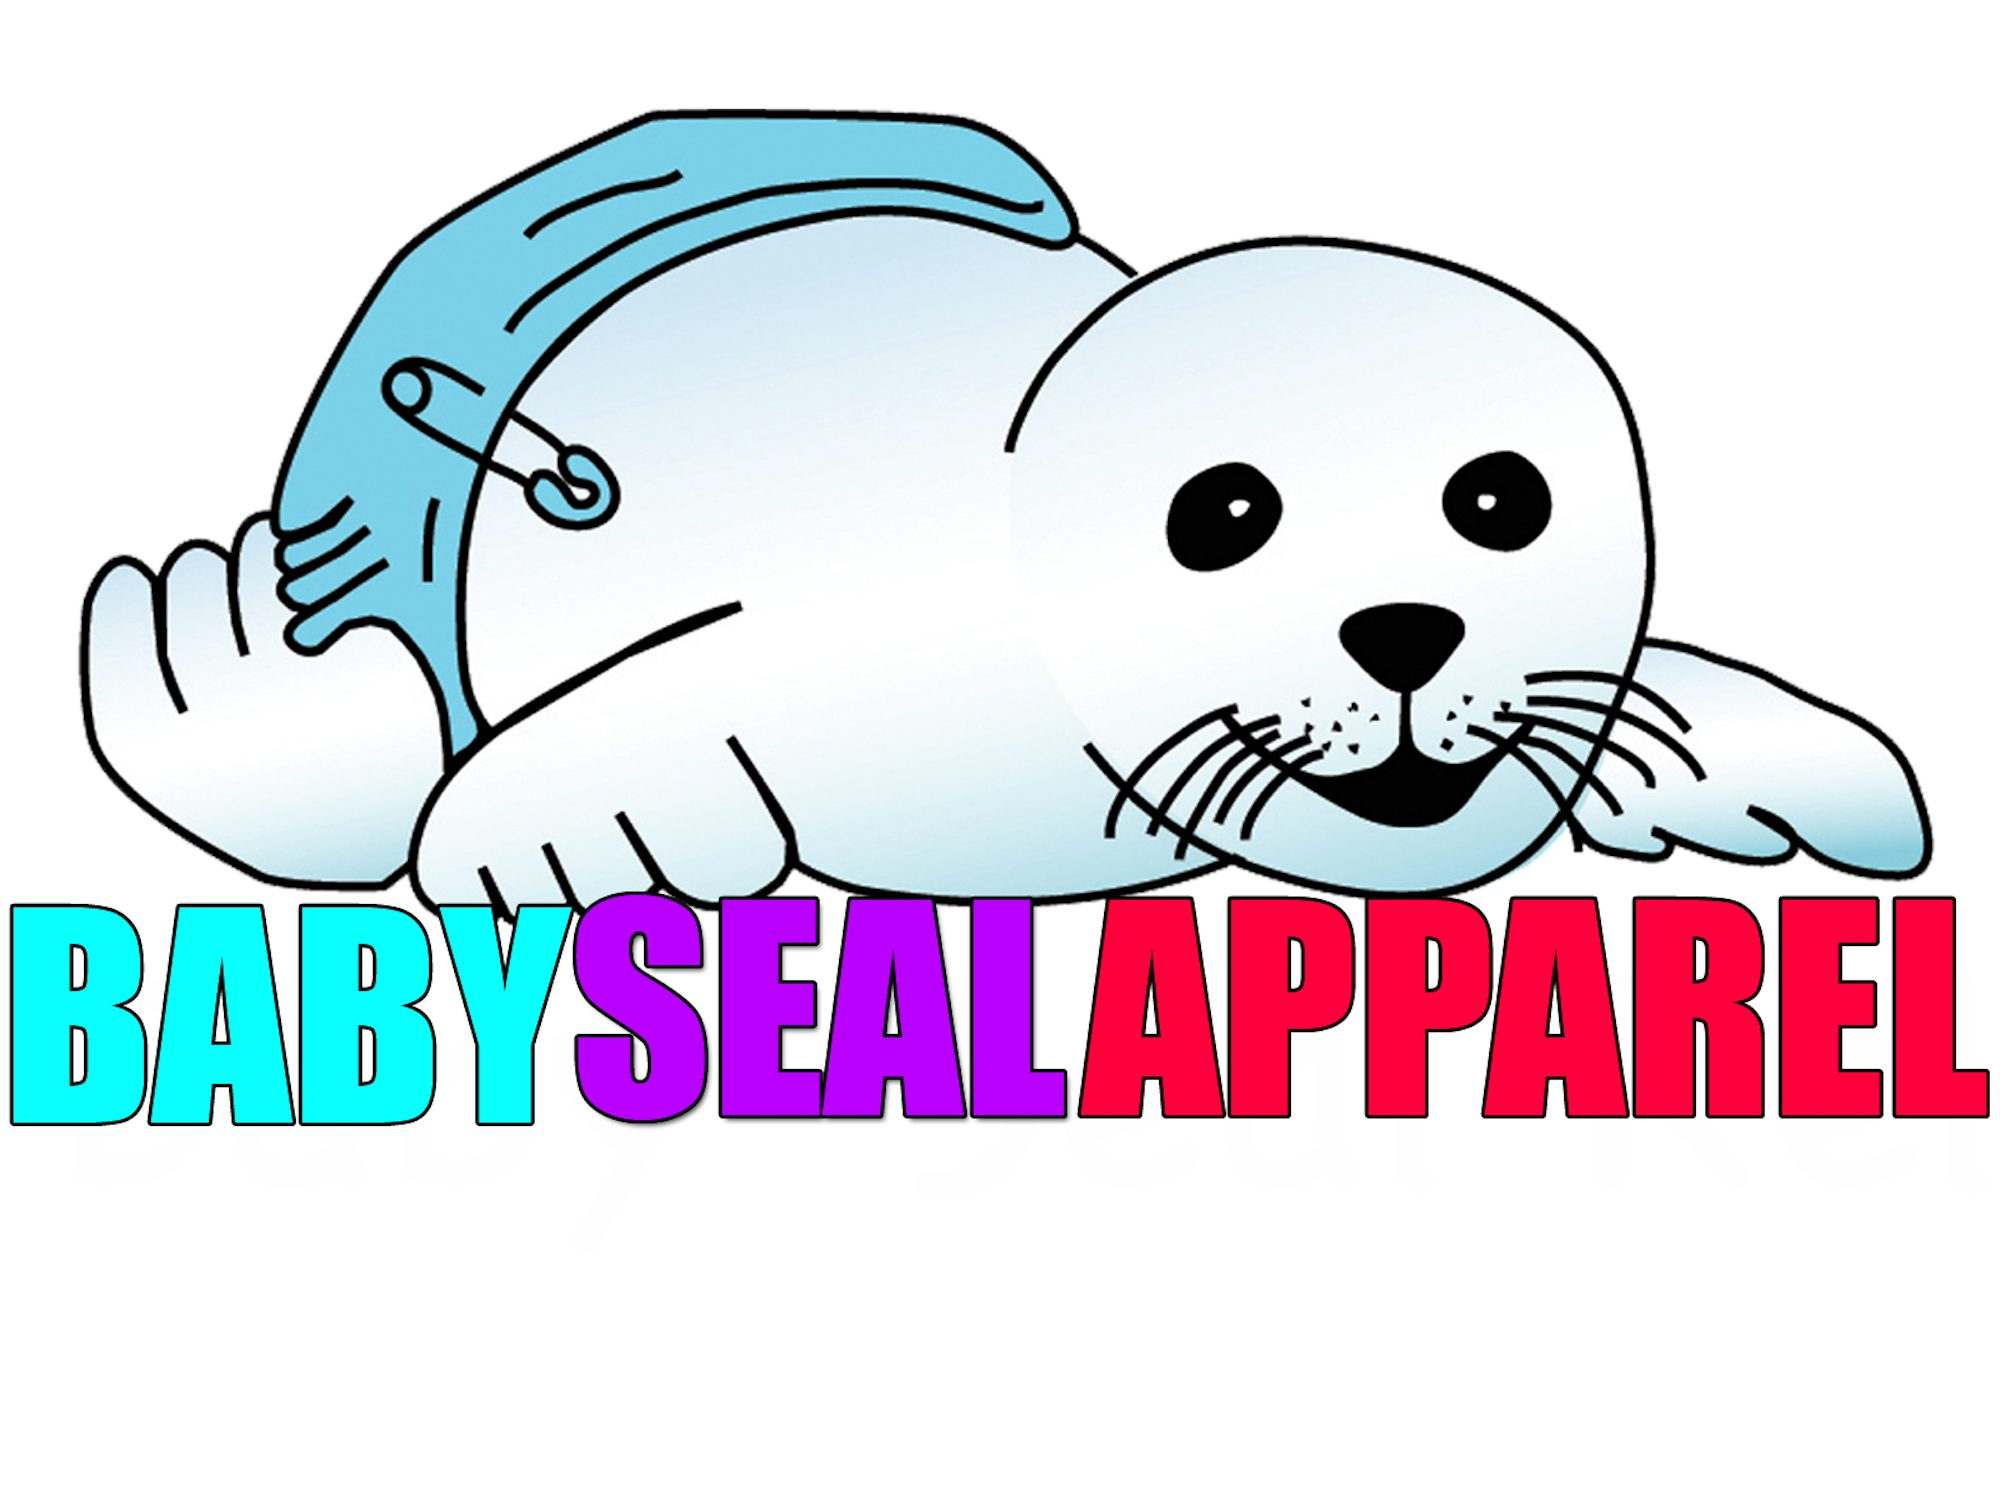 Baby Seal Apparel